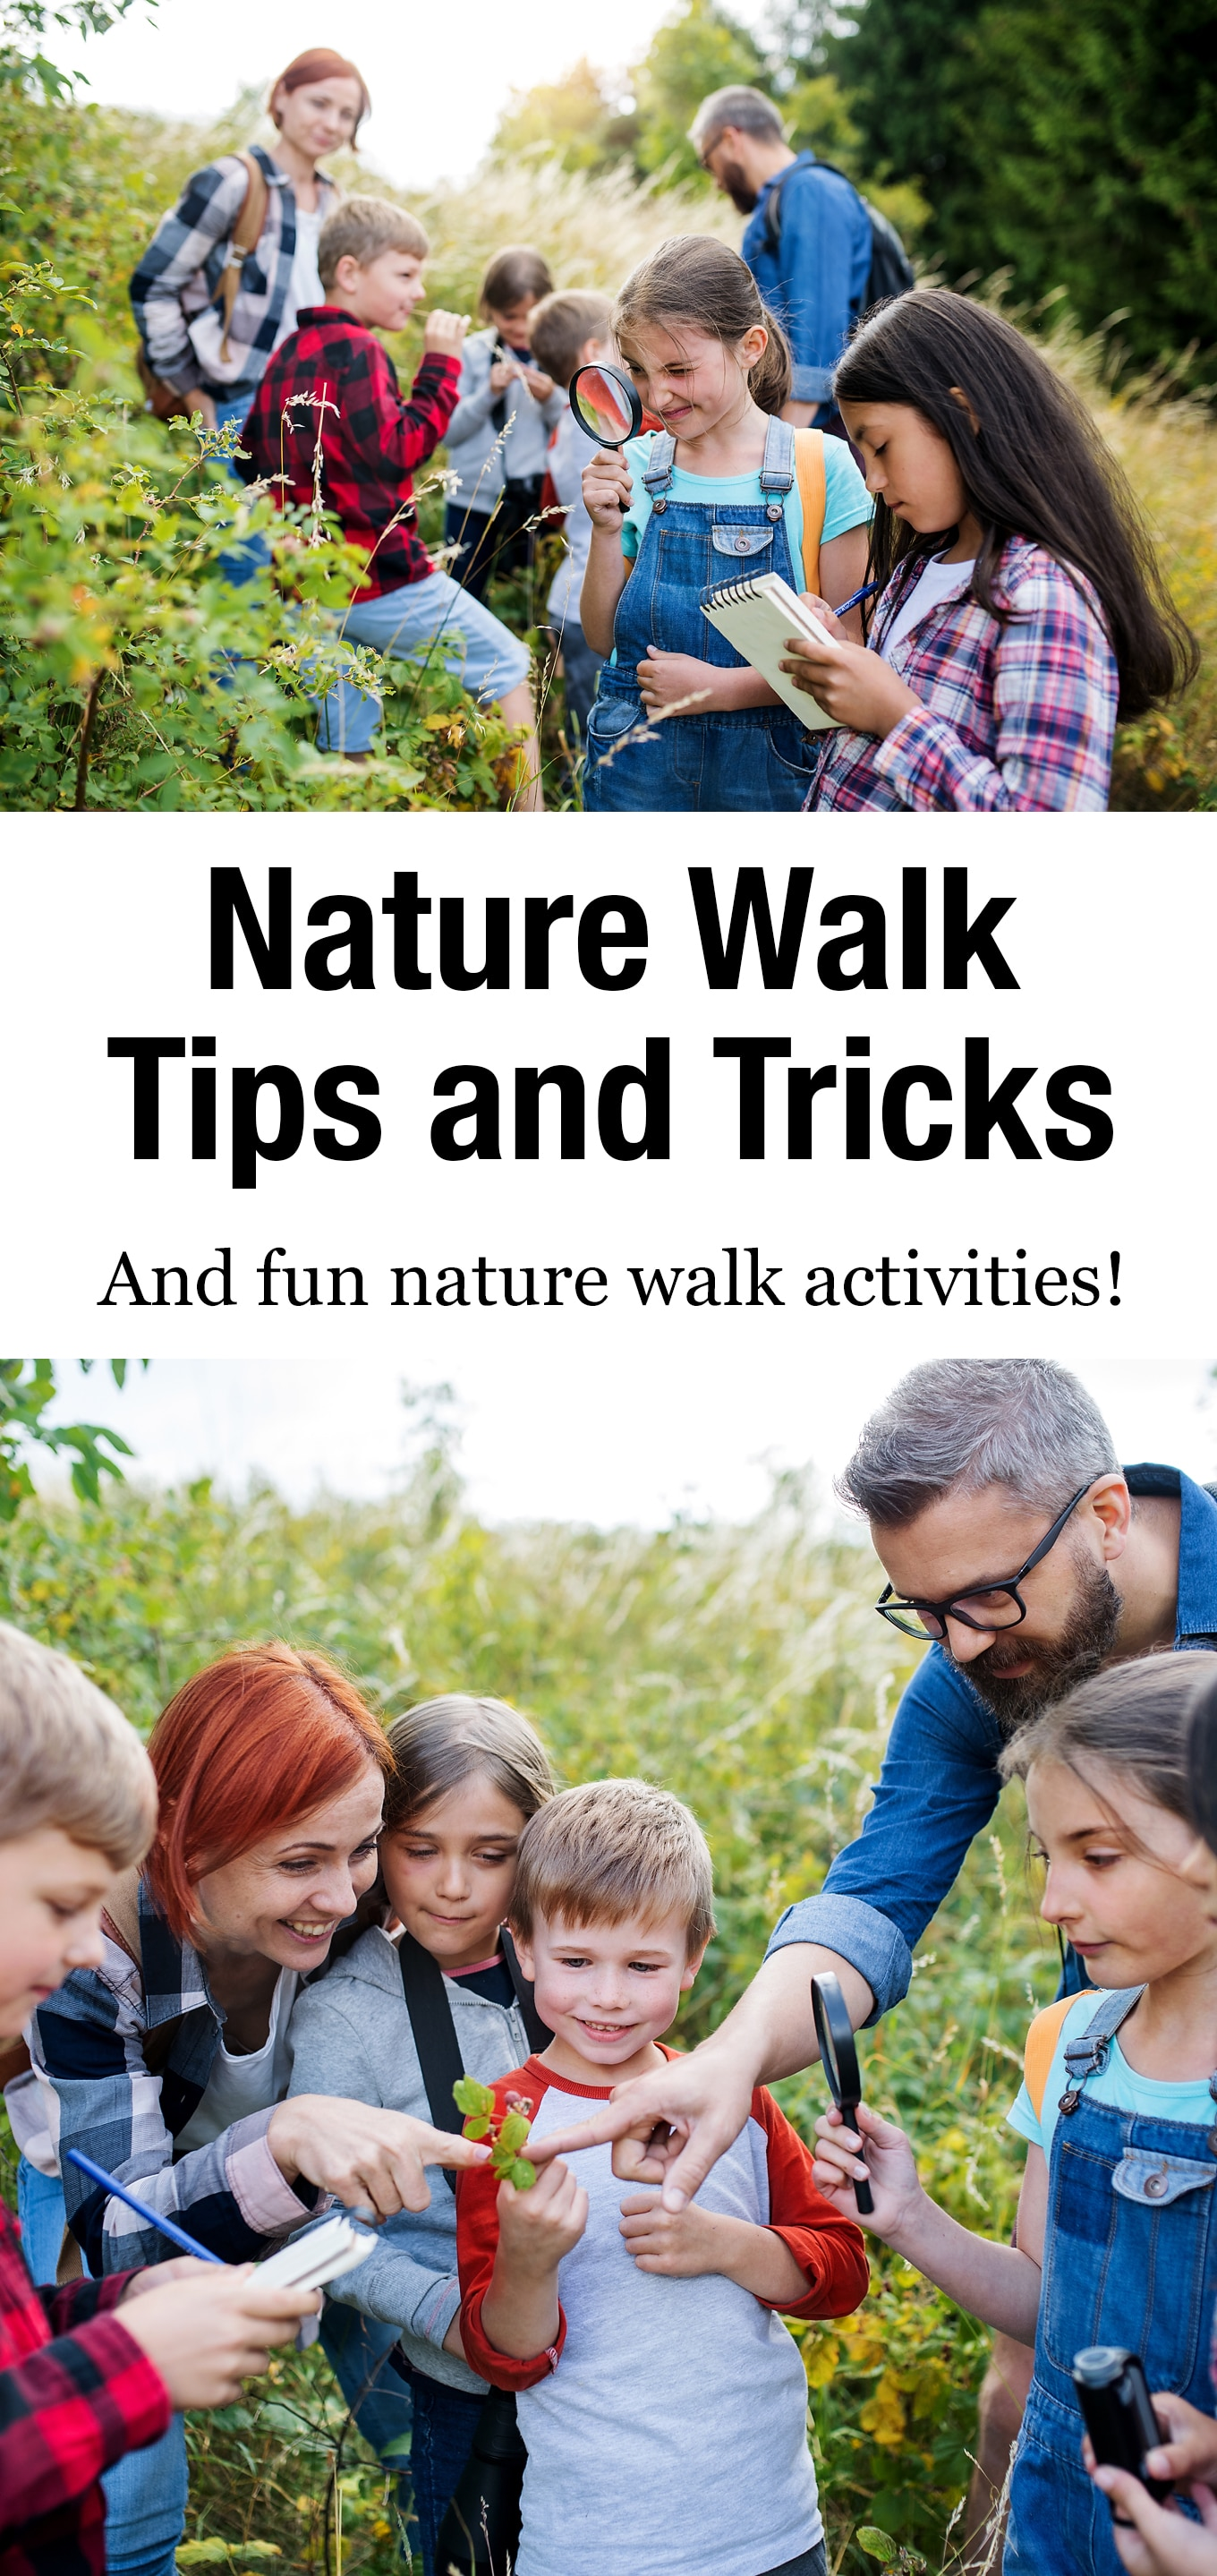 Practical nature walk tips, tricks, and fun nature walk activities for families with toddlers, preschoolers, and school-age kids. #nature #kids #naturewalks #forestschool #outdooreducation via @firefliesandmudpies